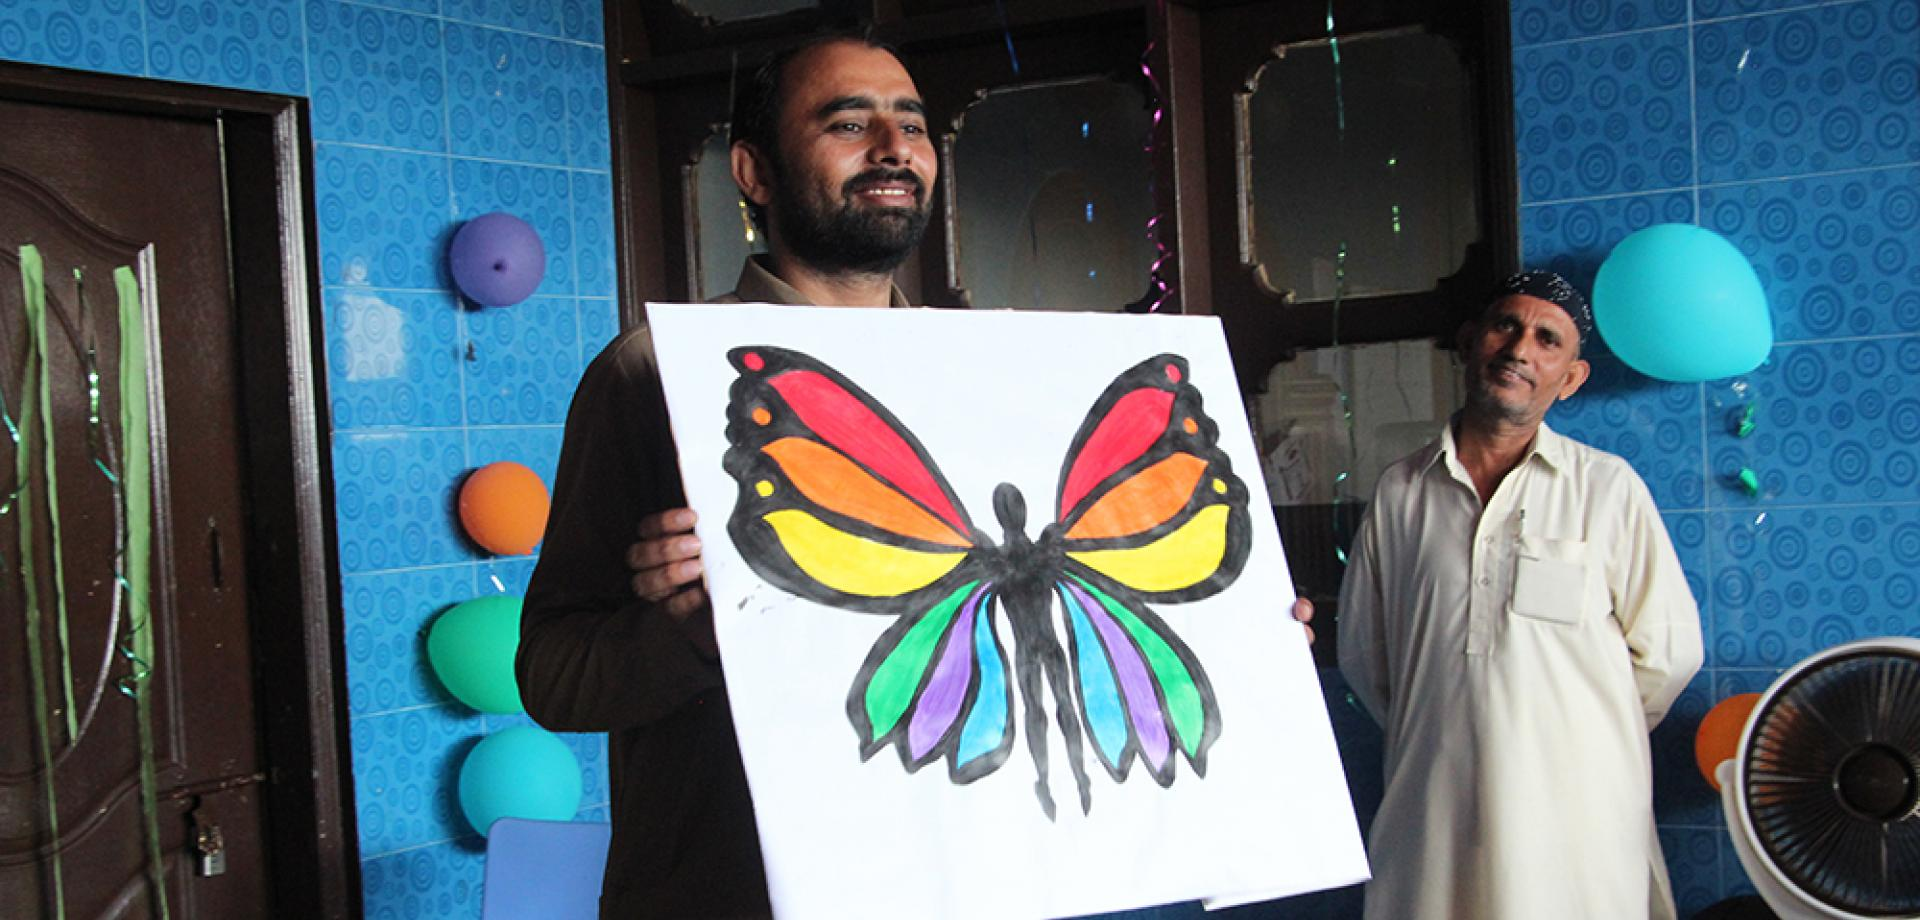 Health Promotion Supervisor Tasawwar Ali discusses the stigma of hepatitis C through the visual representation of a butterfly in Machar Colony, Pakistan.